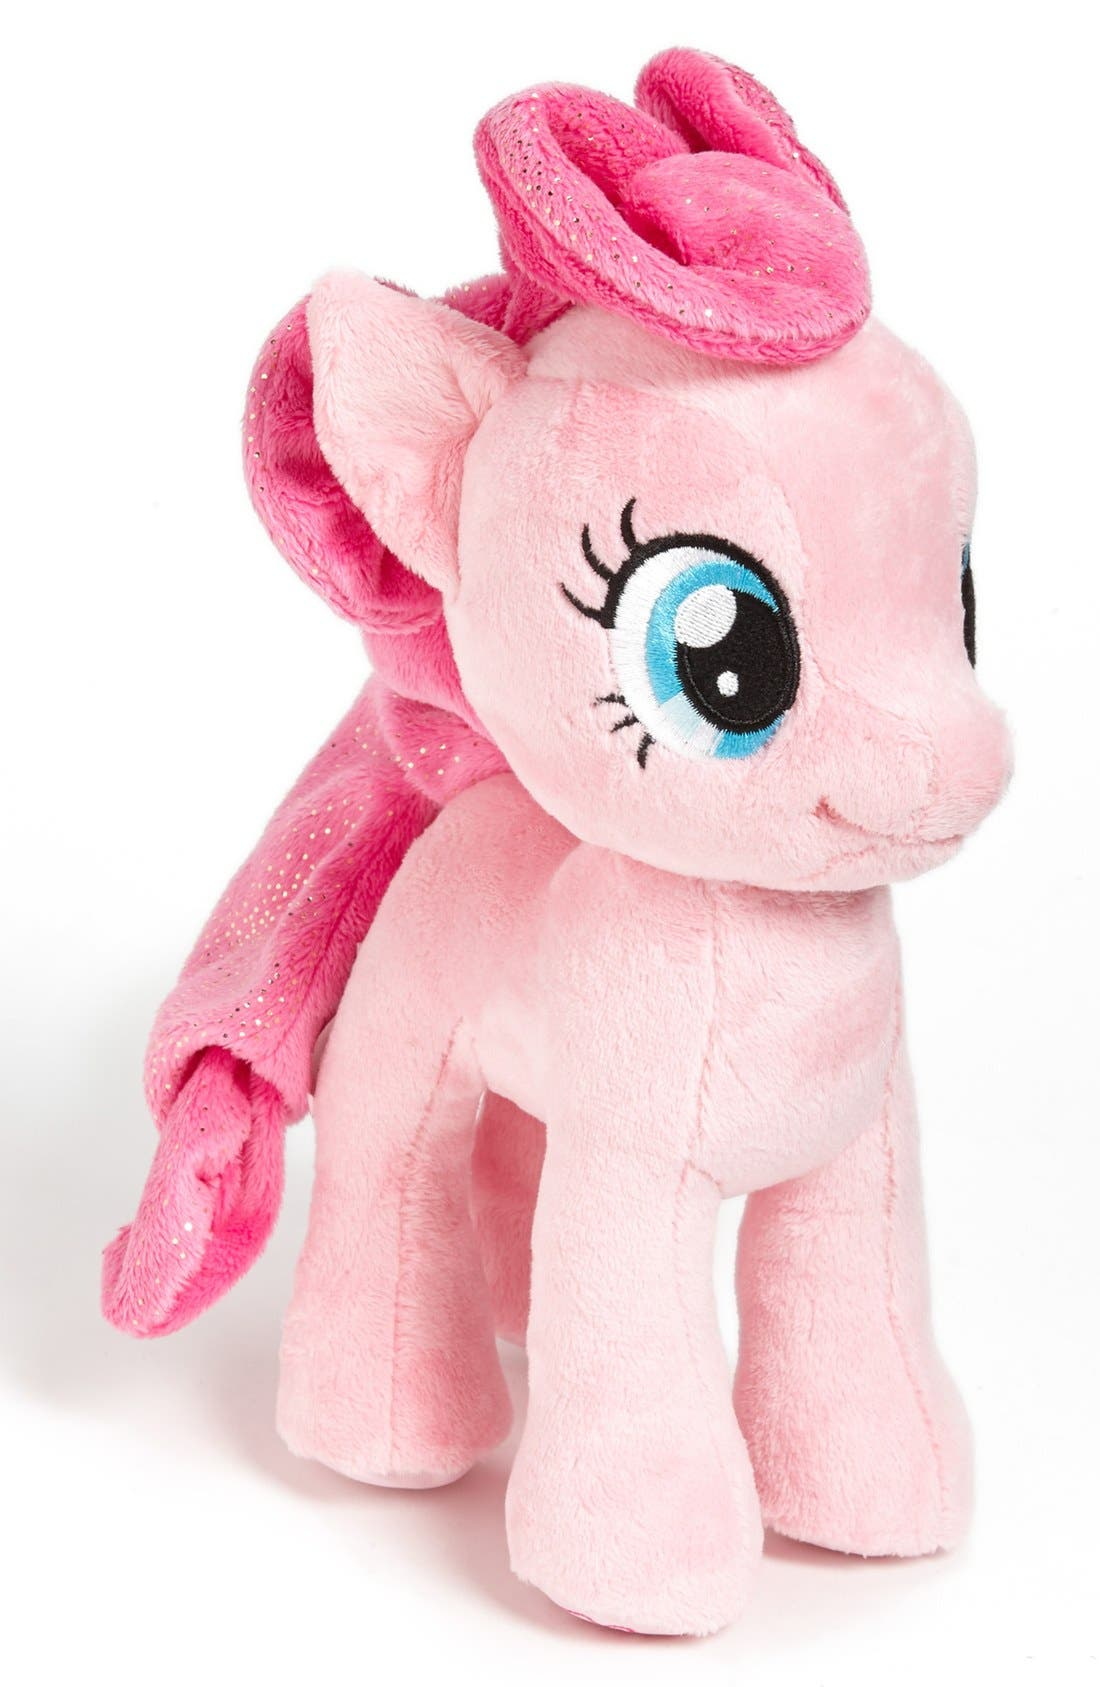 Alternate Image 1 Selected - Aurora World Toys 'My Little Pony® - Pinkie Pie®' Stuffed Animal (10 Inch)